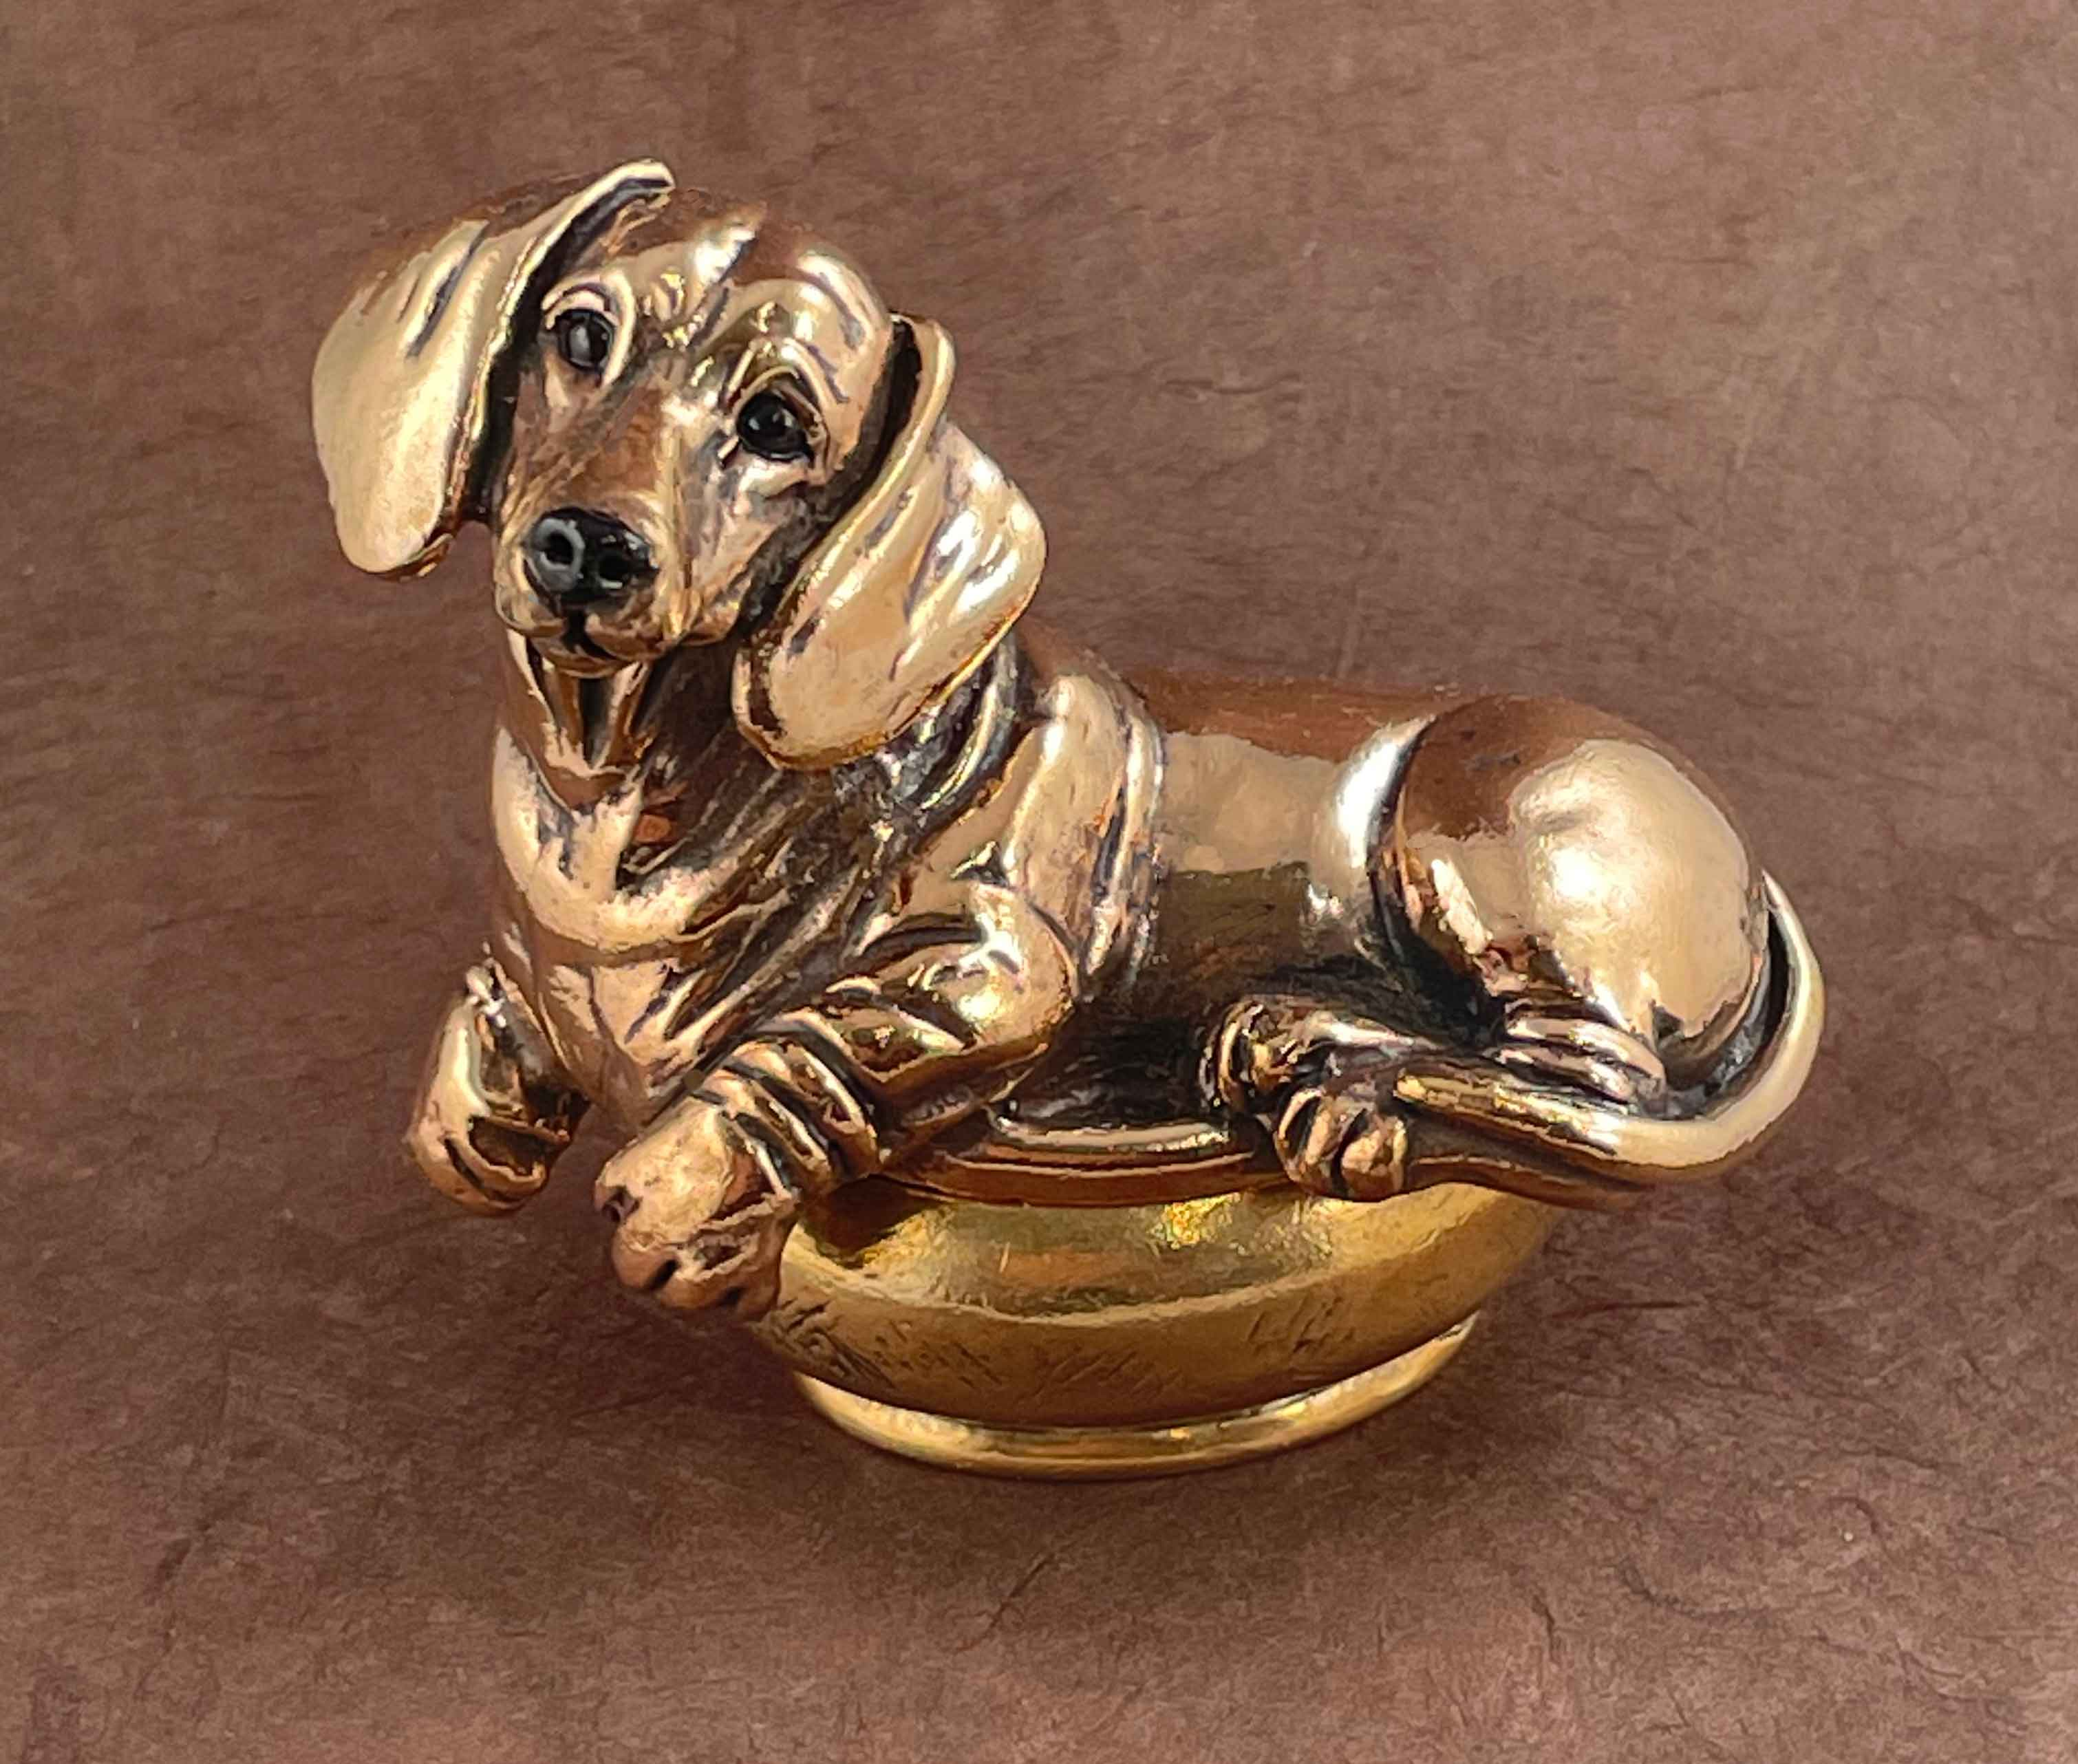 Tulip; One of a Kind Hand Sculpted Greyhound Statue